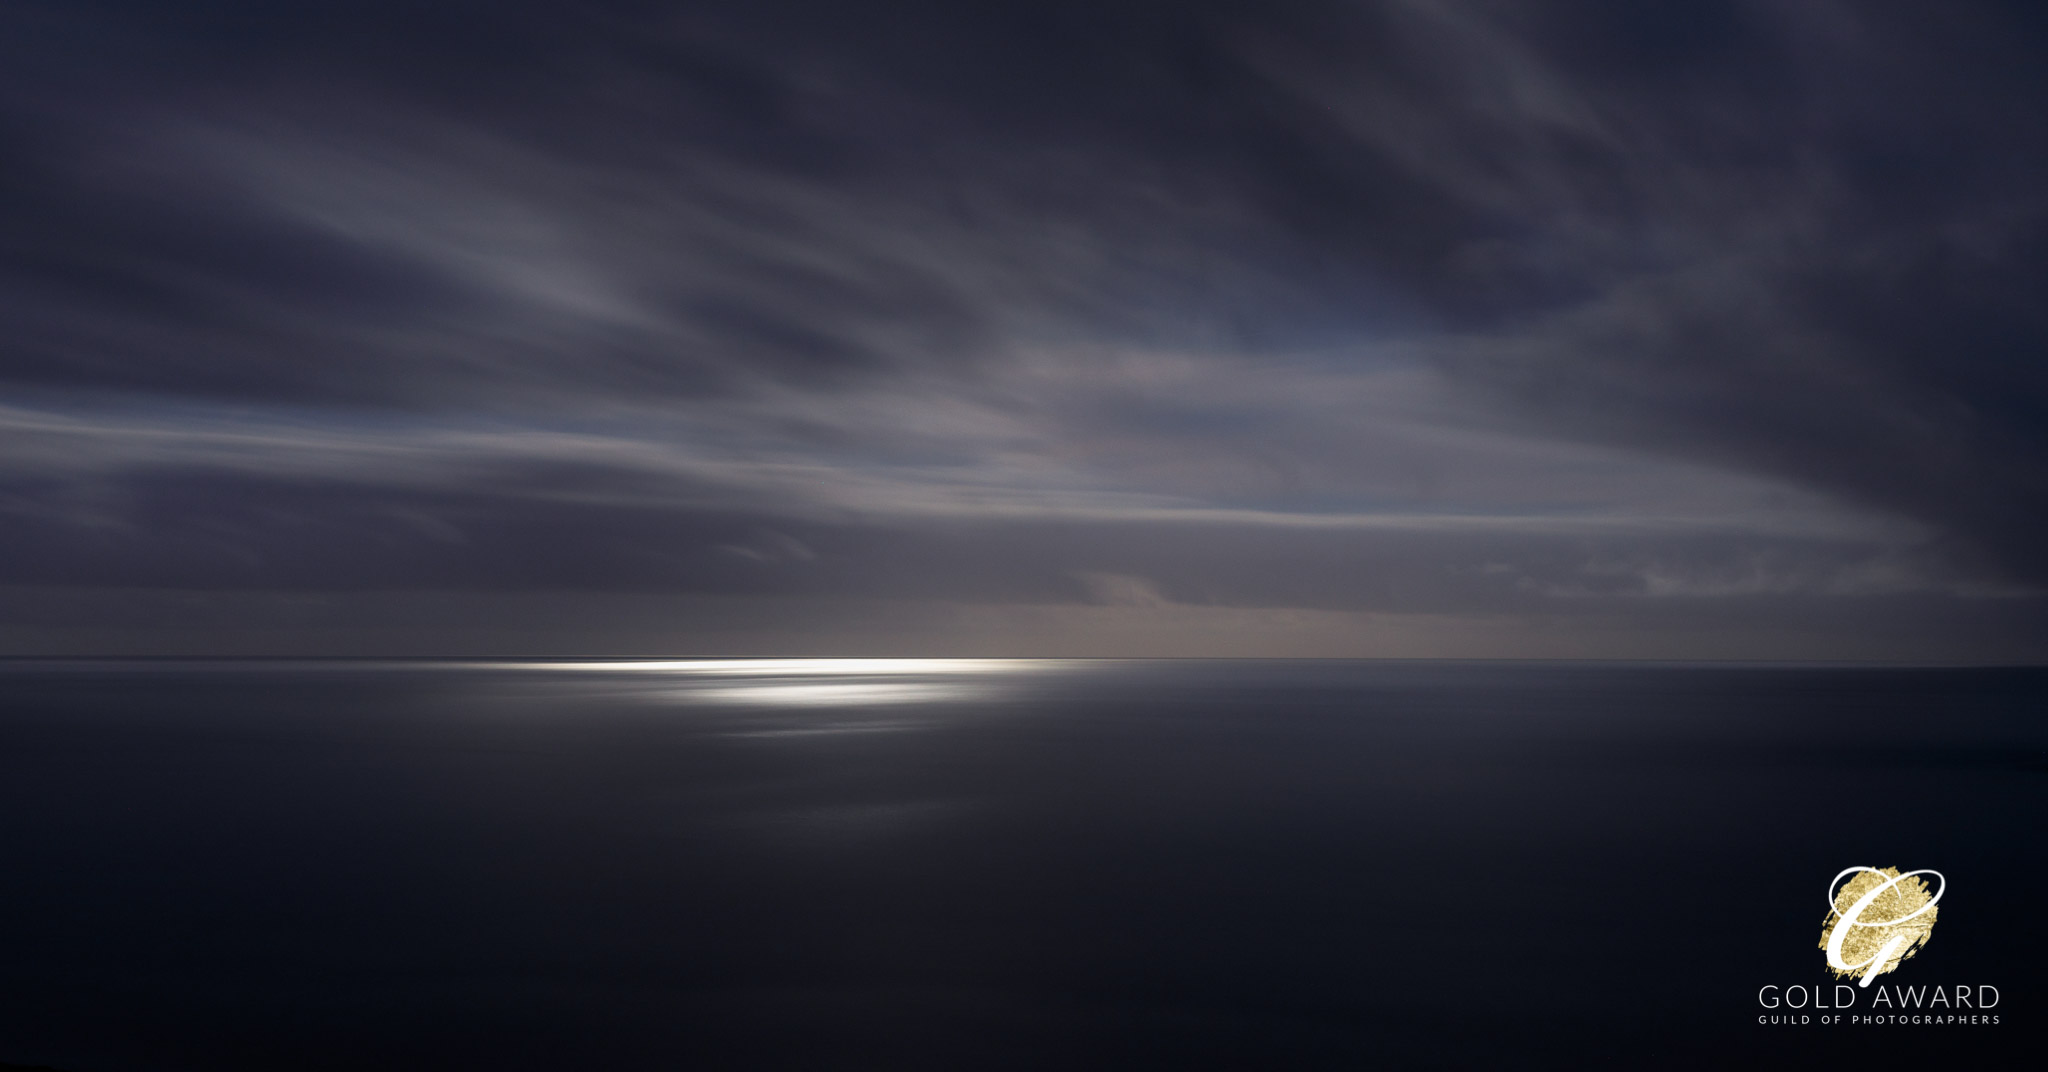 Moonlit view over the Atlantic Ocean from West Cork with a calm sea and dramatic soft sky.